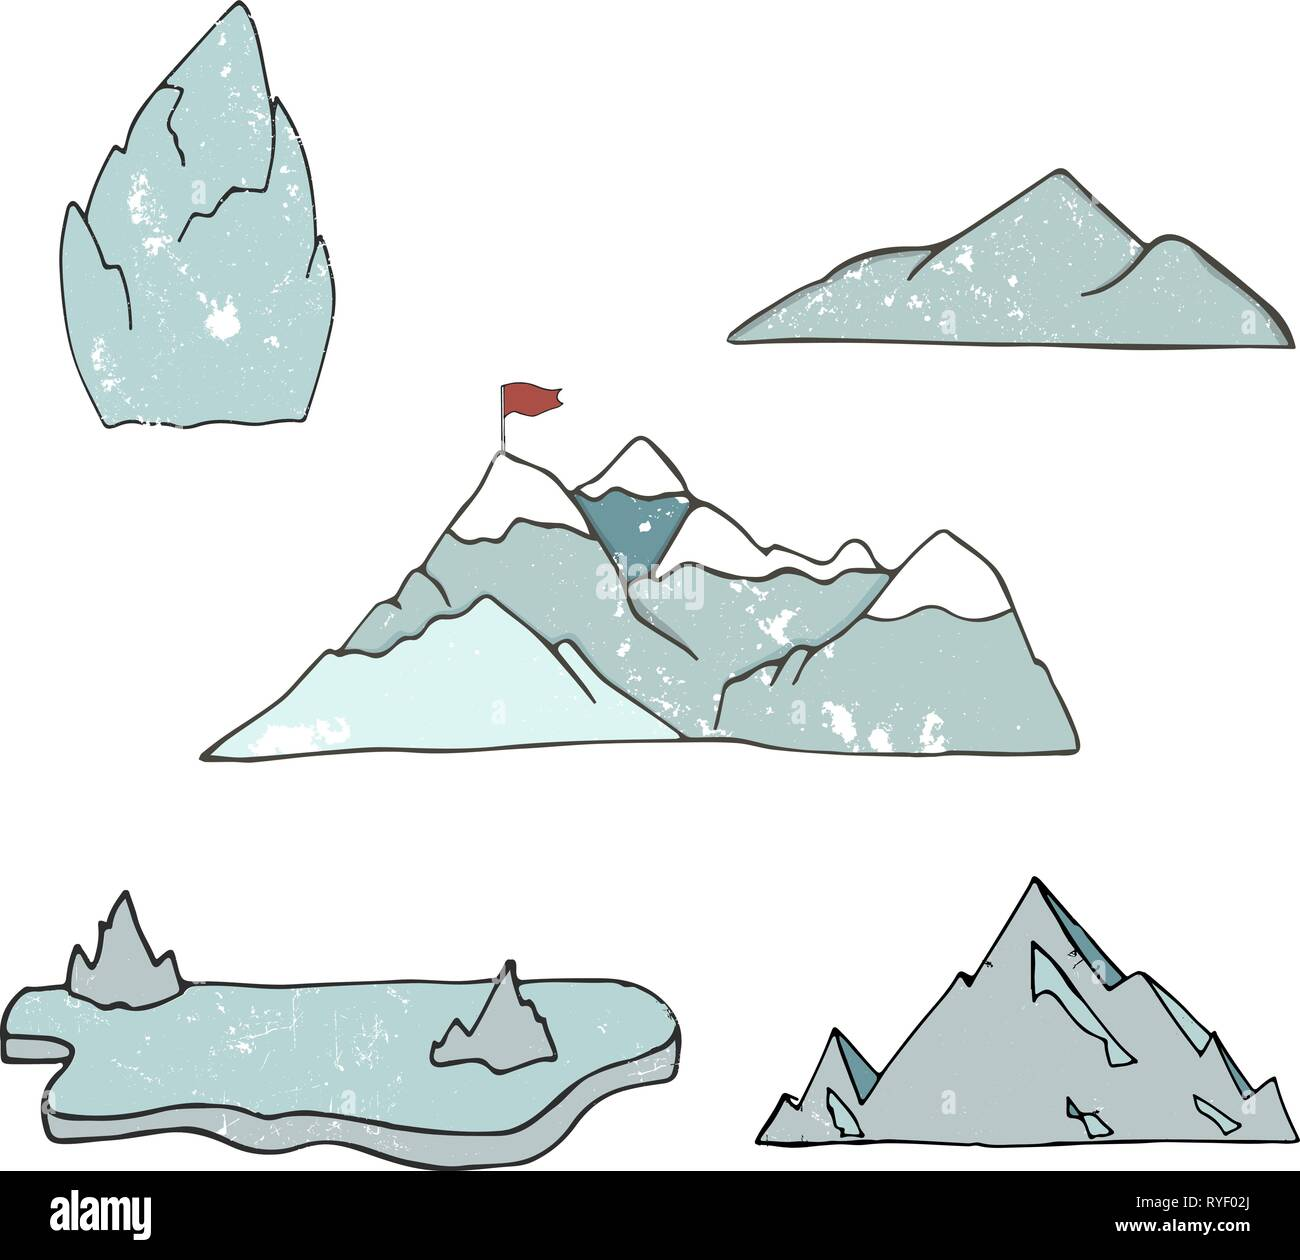 Mountain icons or logotypes. Vector illustration of mountains landscape isolated on white background. Hand drawn clip art grunge style texture. Alps.  - Stock Vector